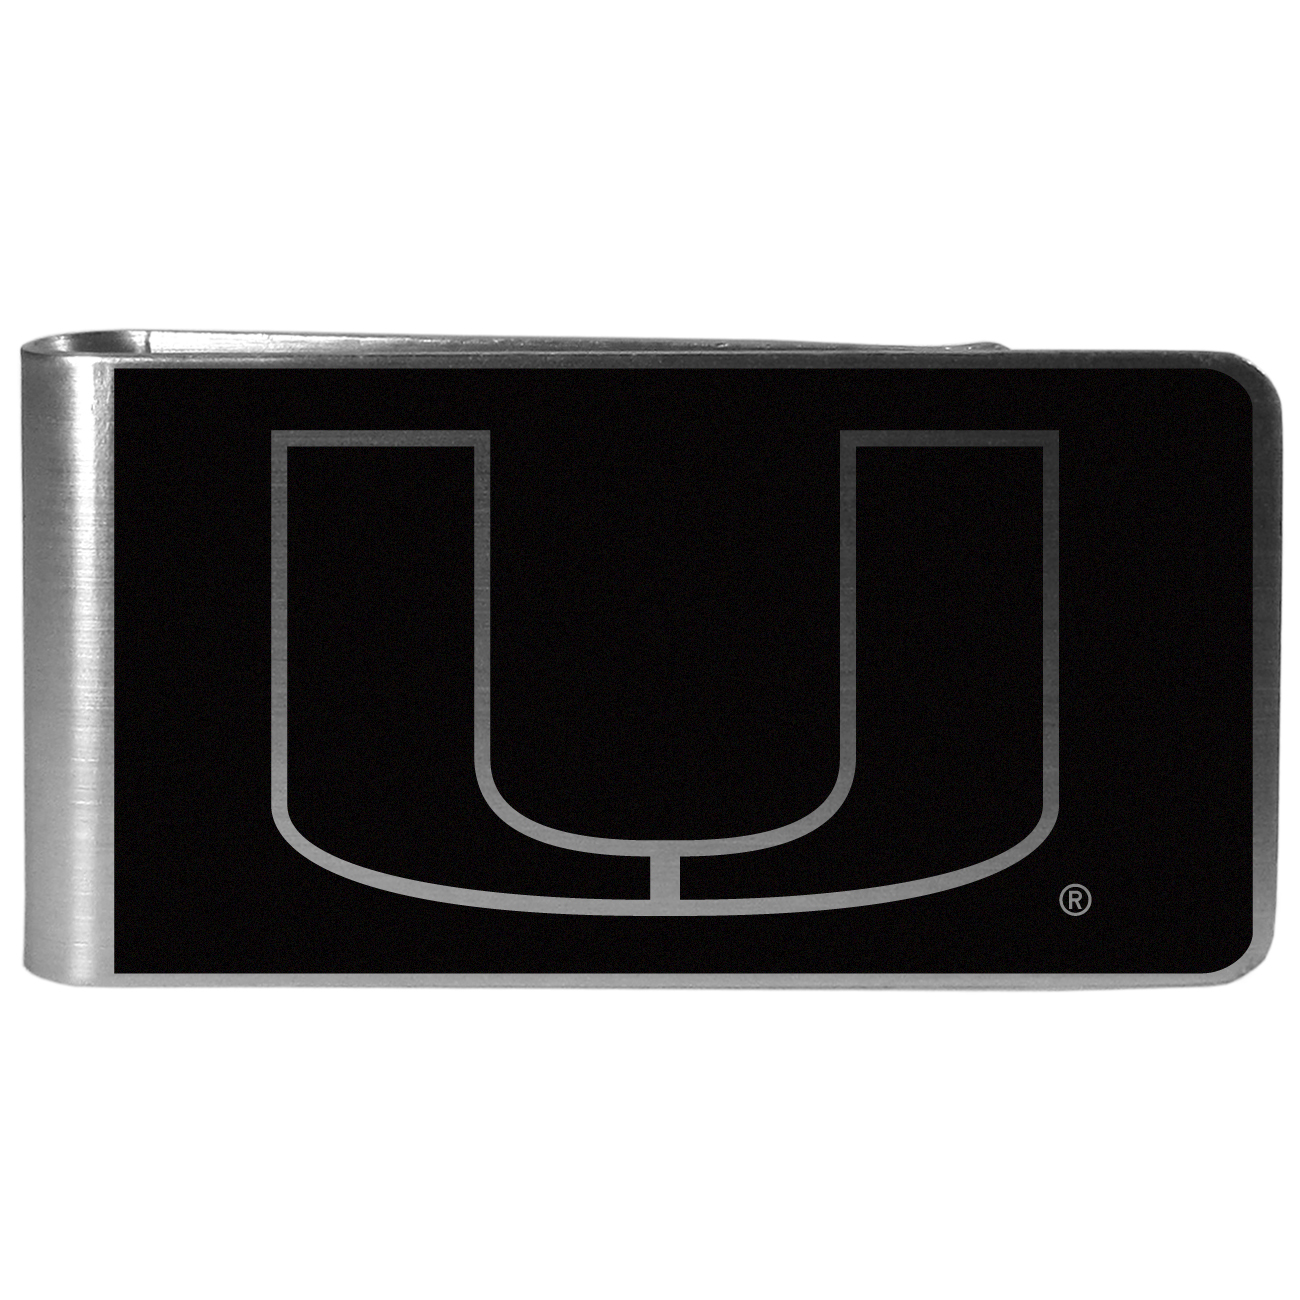 Miami Hurricanes Black and Steel Money Clip - Our monochromatic steel money clips have a classic style and superior quality. The strong, steel clip has a black overlay of the Miami Hurricanes logo over the brushed metal finish creating a stylish men's fashion accessory that would make any fan proud.